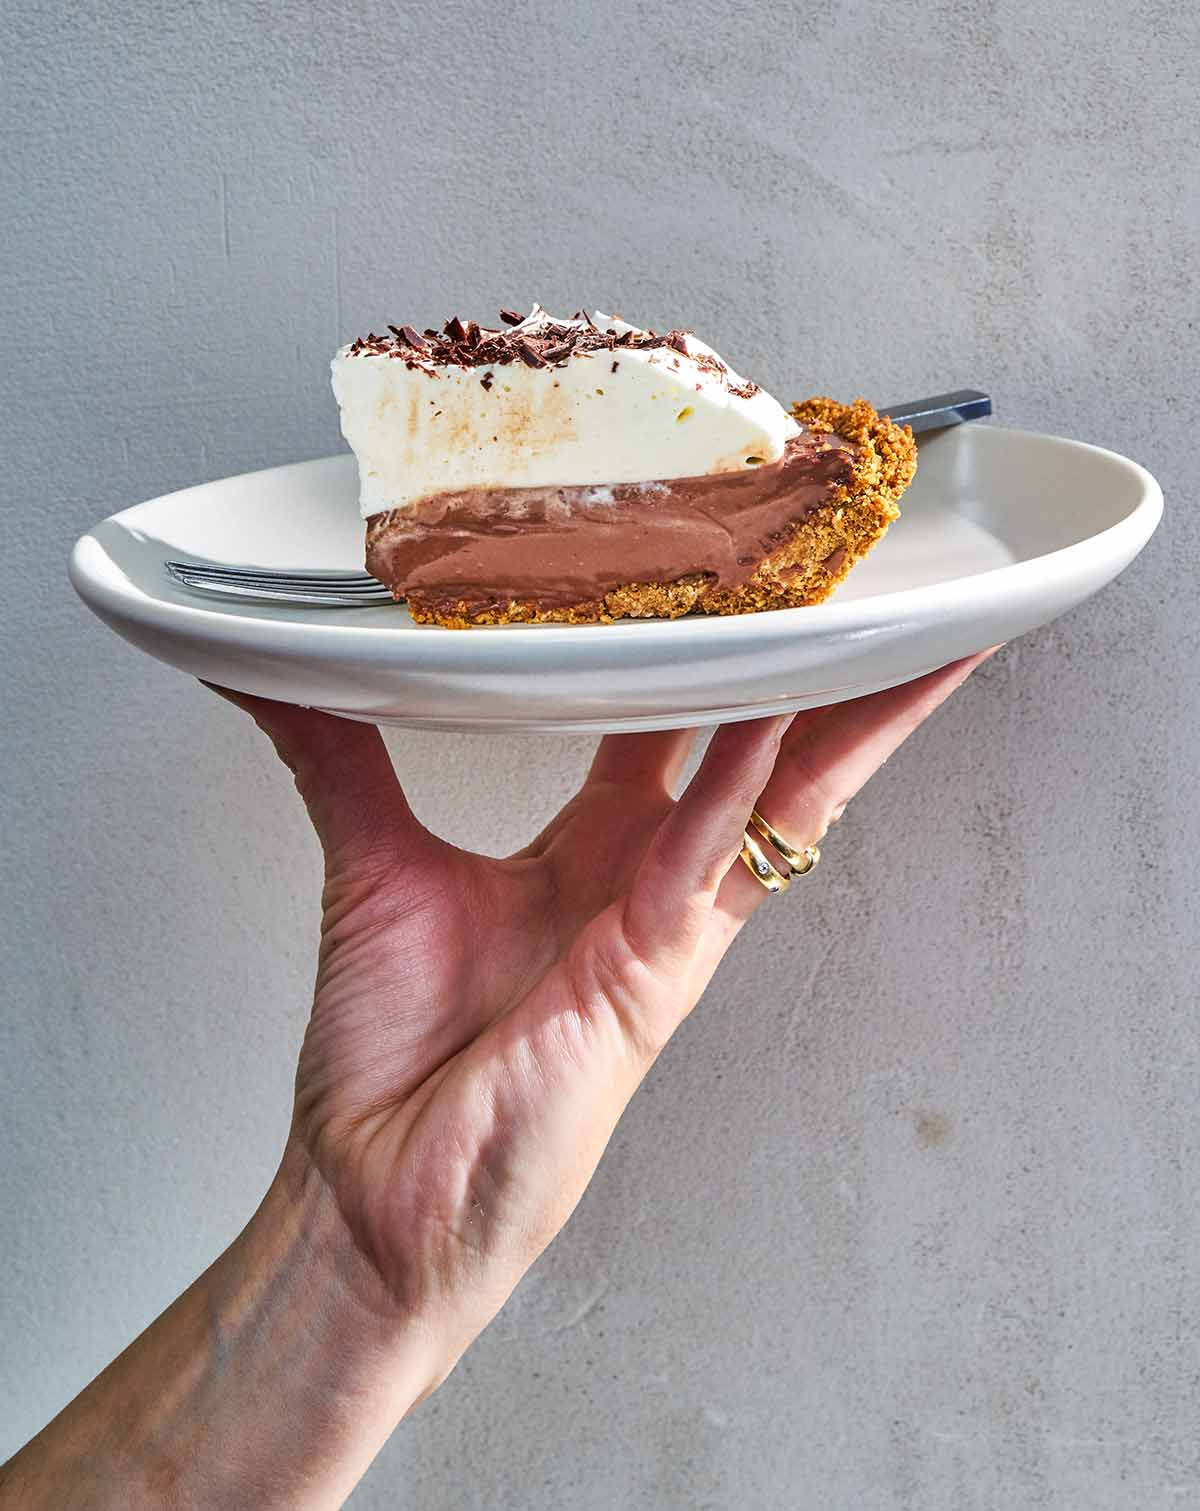 A person holding a white plate with a slice of dark chocolate pudding pie and a fork.